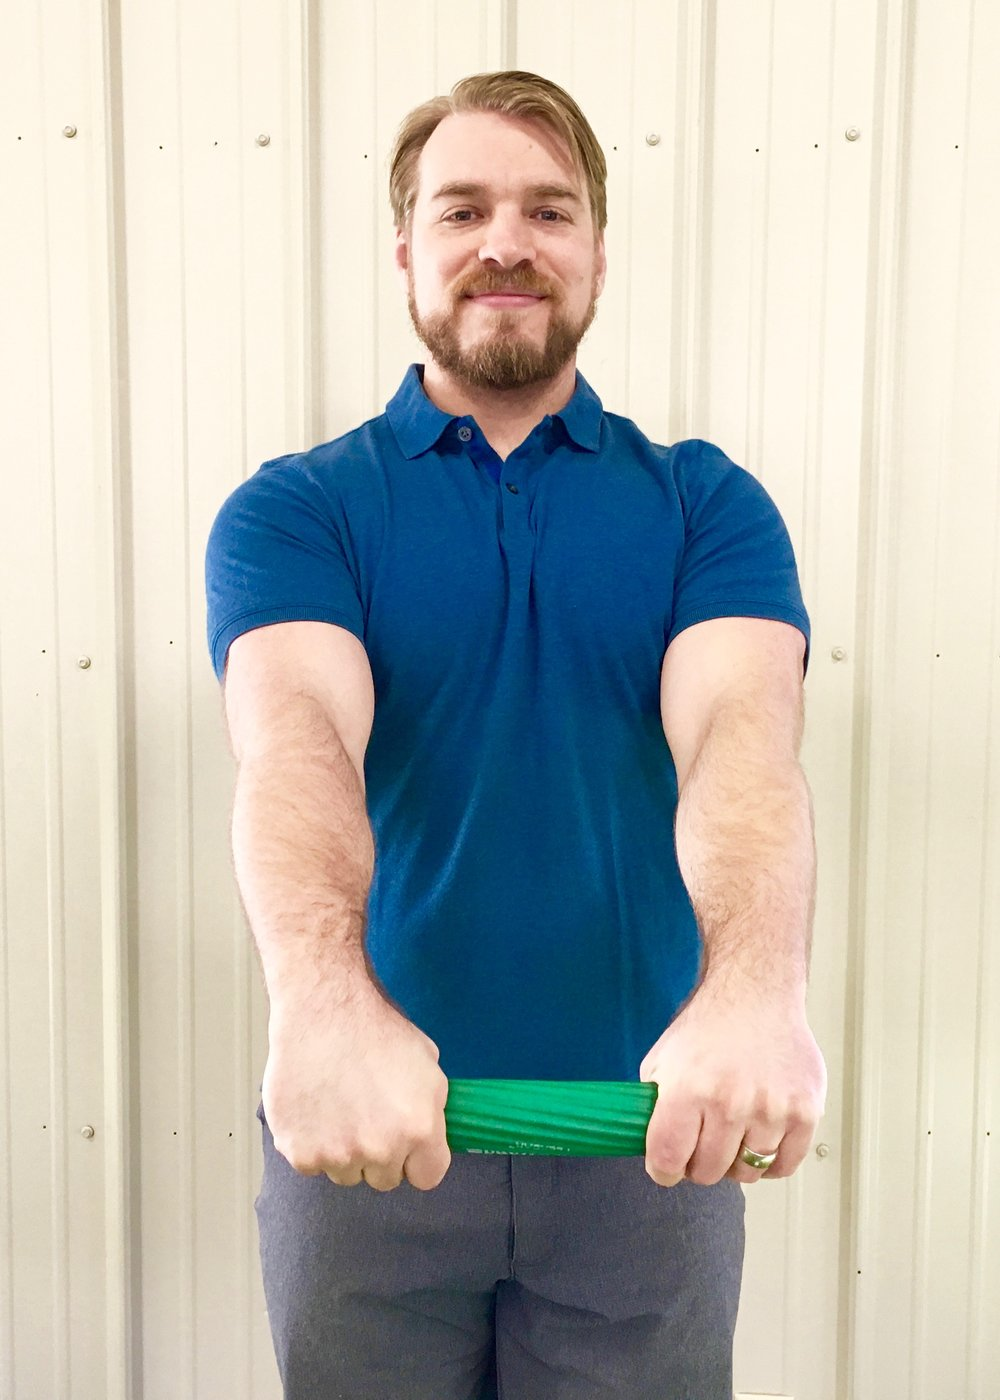 Tennis Elbow Exercise 5 - Slowly allow the wrist of your injured arm to flex while squeezing the bar. Reset your grip for each rep.